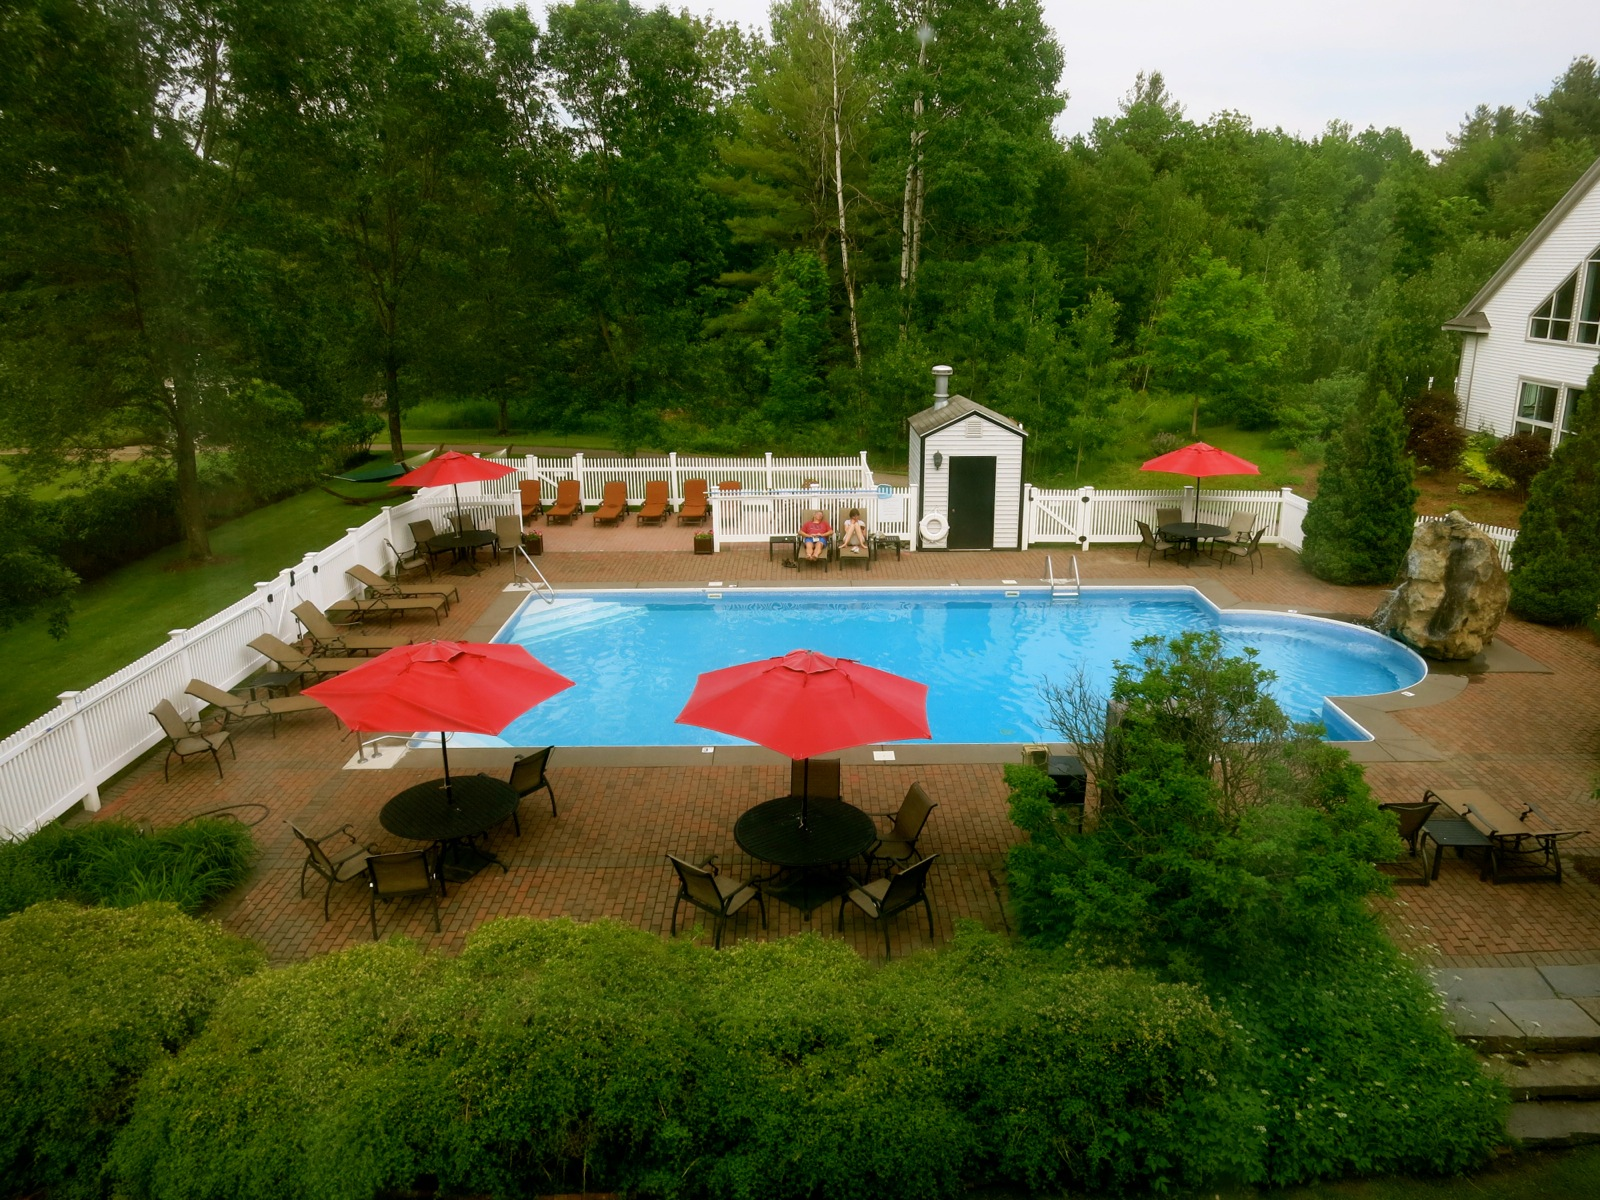 The Essex Vermont S Culinary Resort And Spa